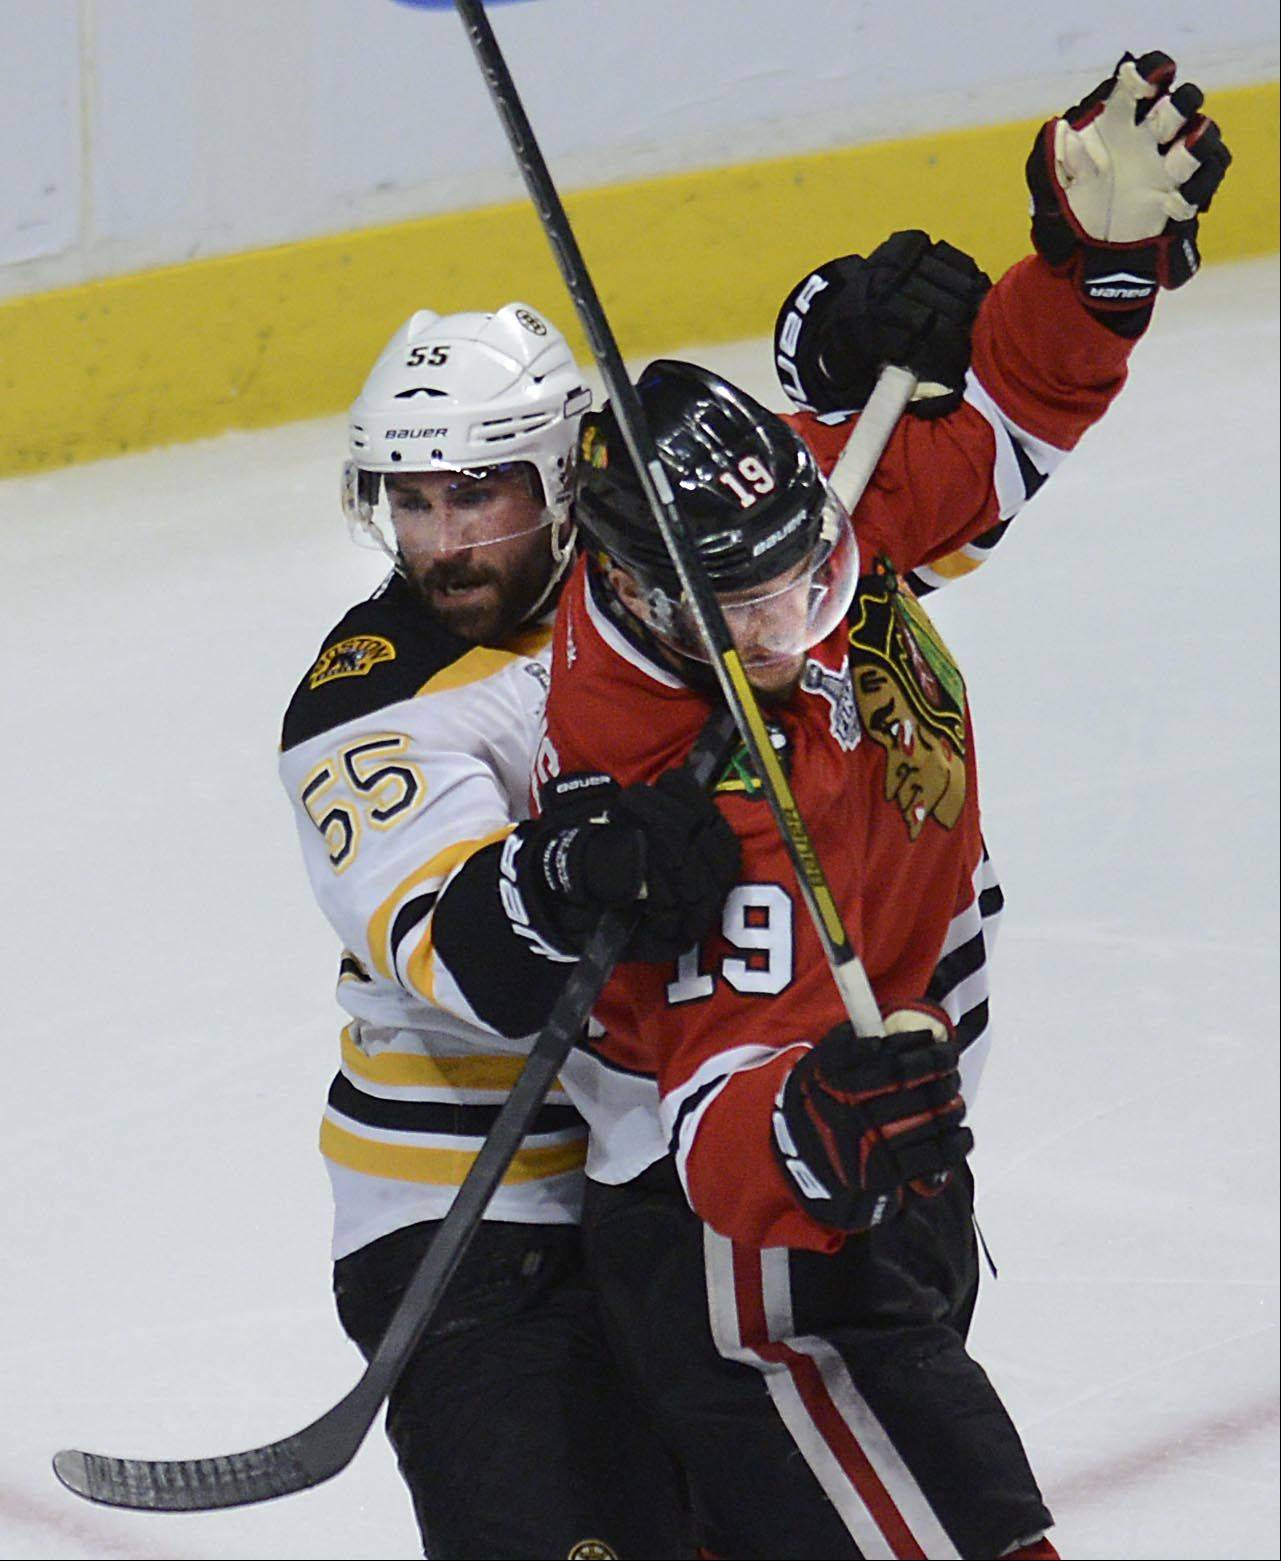 Boston Bruins defenseman Johnny Boychuk wraps how stick around Blackhawks center Jonathan Toews' neck in front of the net in the second overtime during Game 1 of the Stanley Cup Finals Wednesday at the United Center in Chicago. No penalty was called.